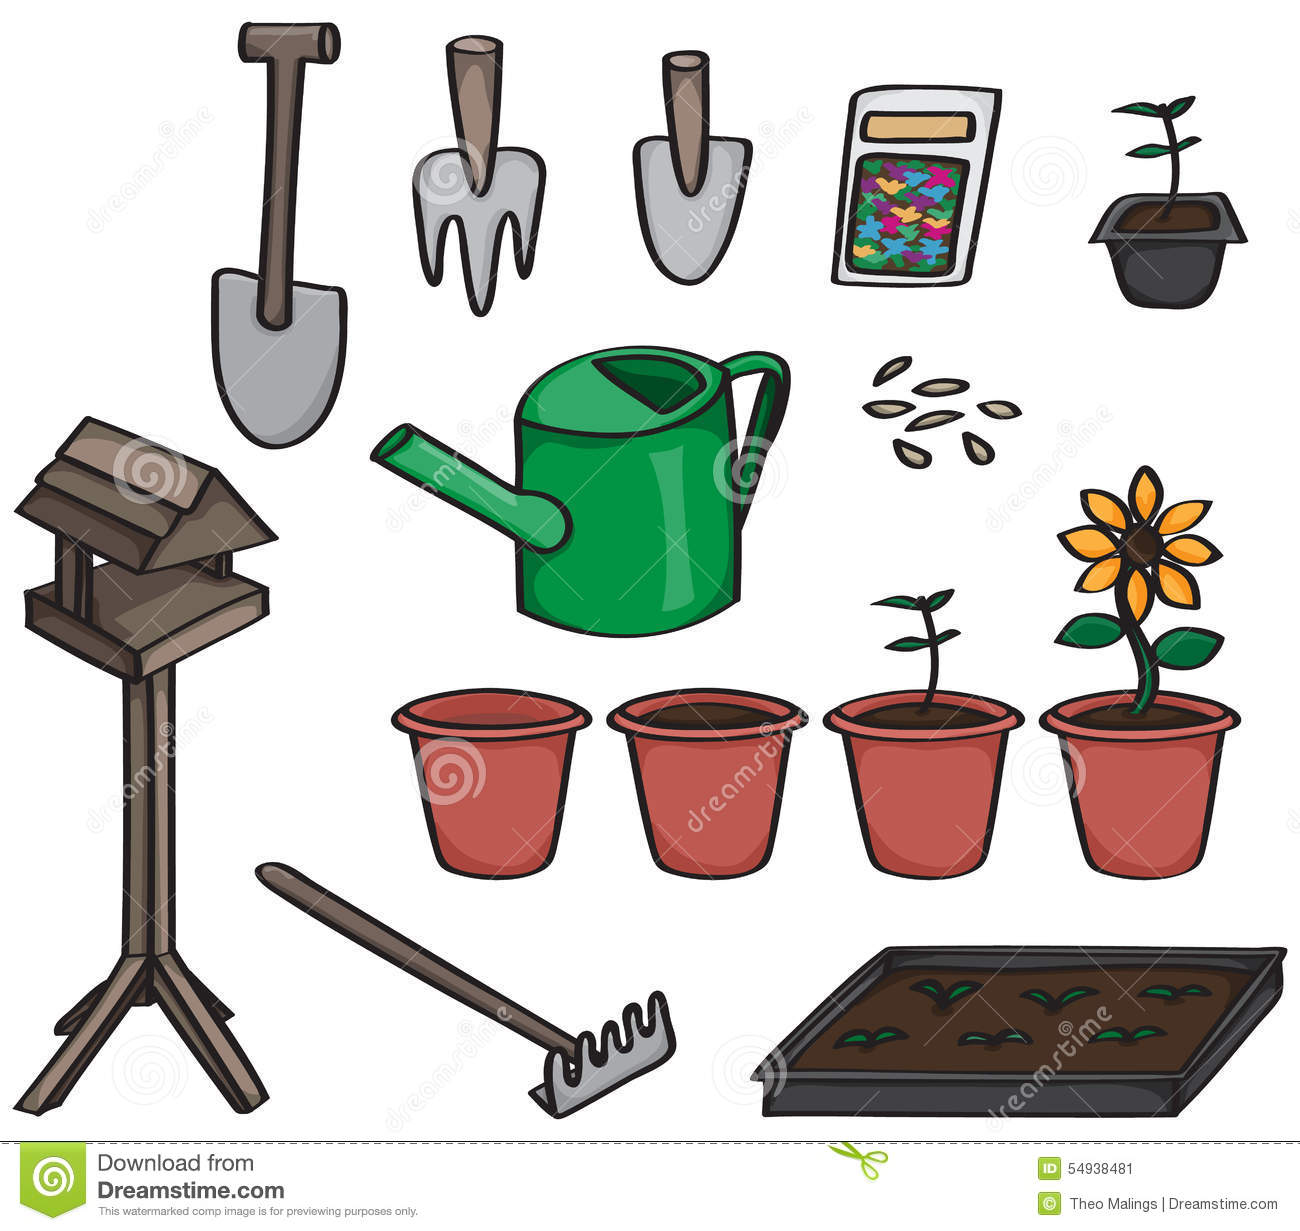 Set of cartoon gardening tools stock vector image 54938481 for Gardening tools cartoon